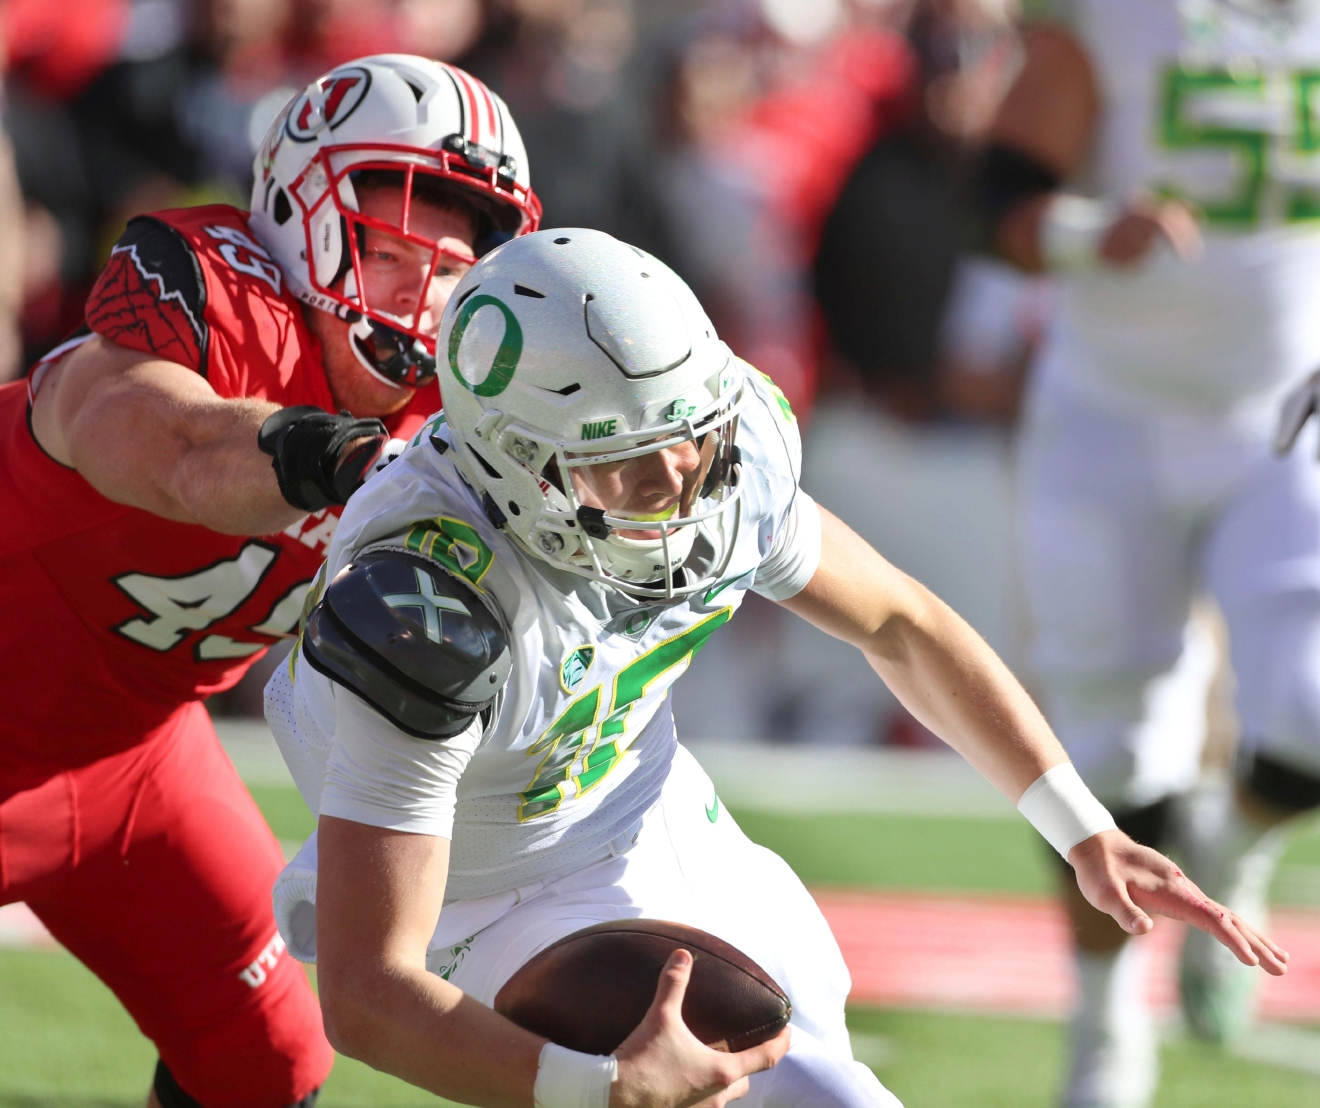 Utah defensive end Hunter Dimick (49), sacks Oregon quarterback Justin Herbert (10) in the first half of an NCAA college football game, Saturday, Nov. 19, 2016, in Salt Lake City. (AP Photo/George Frey)